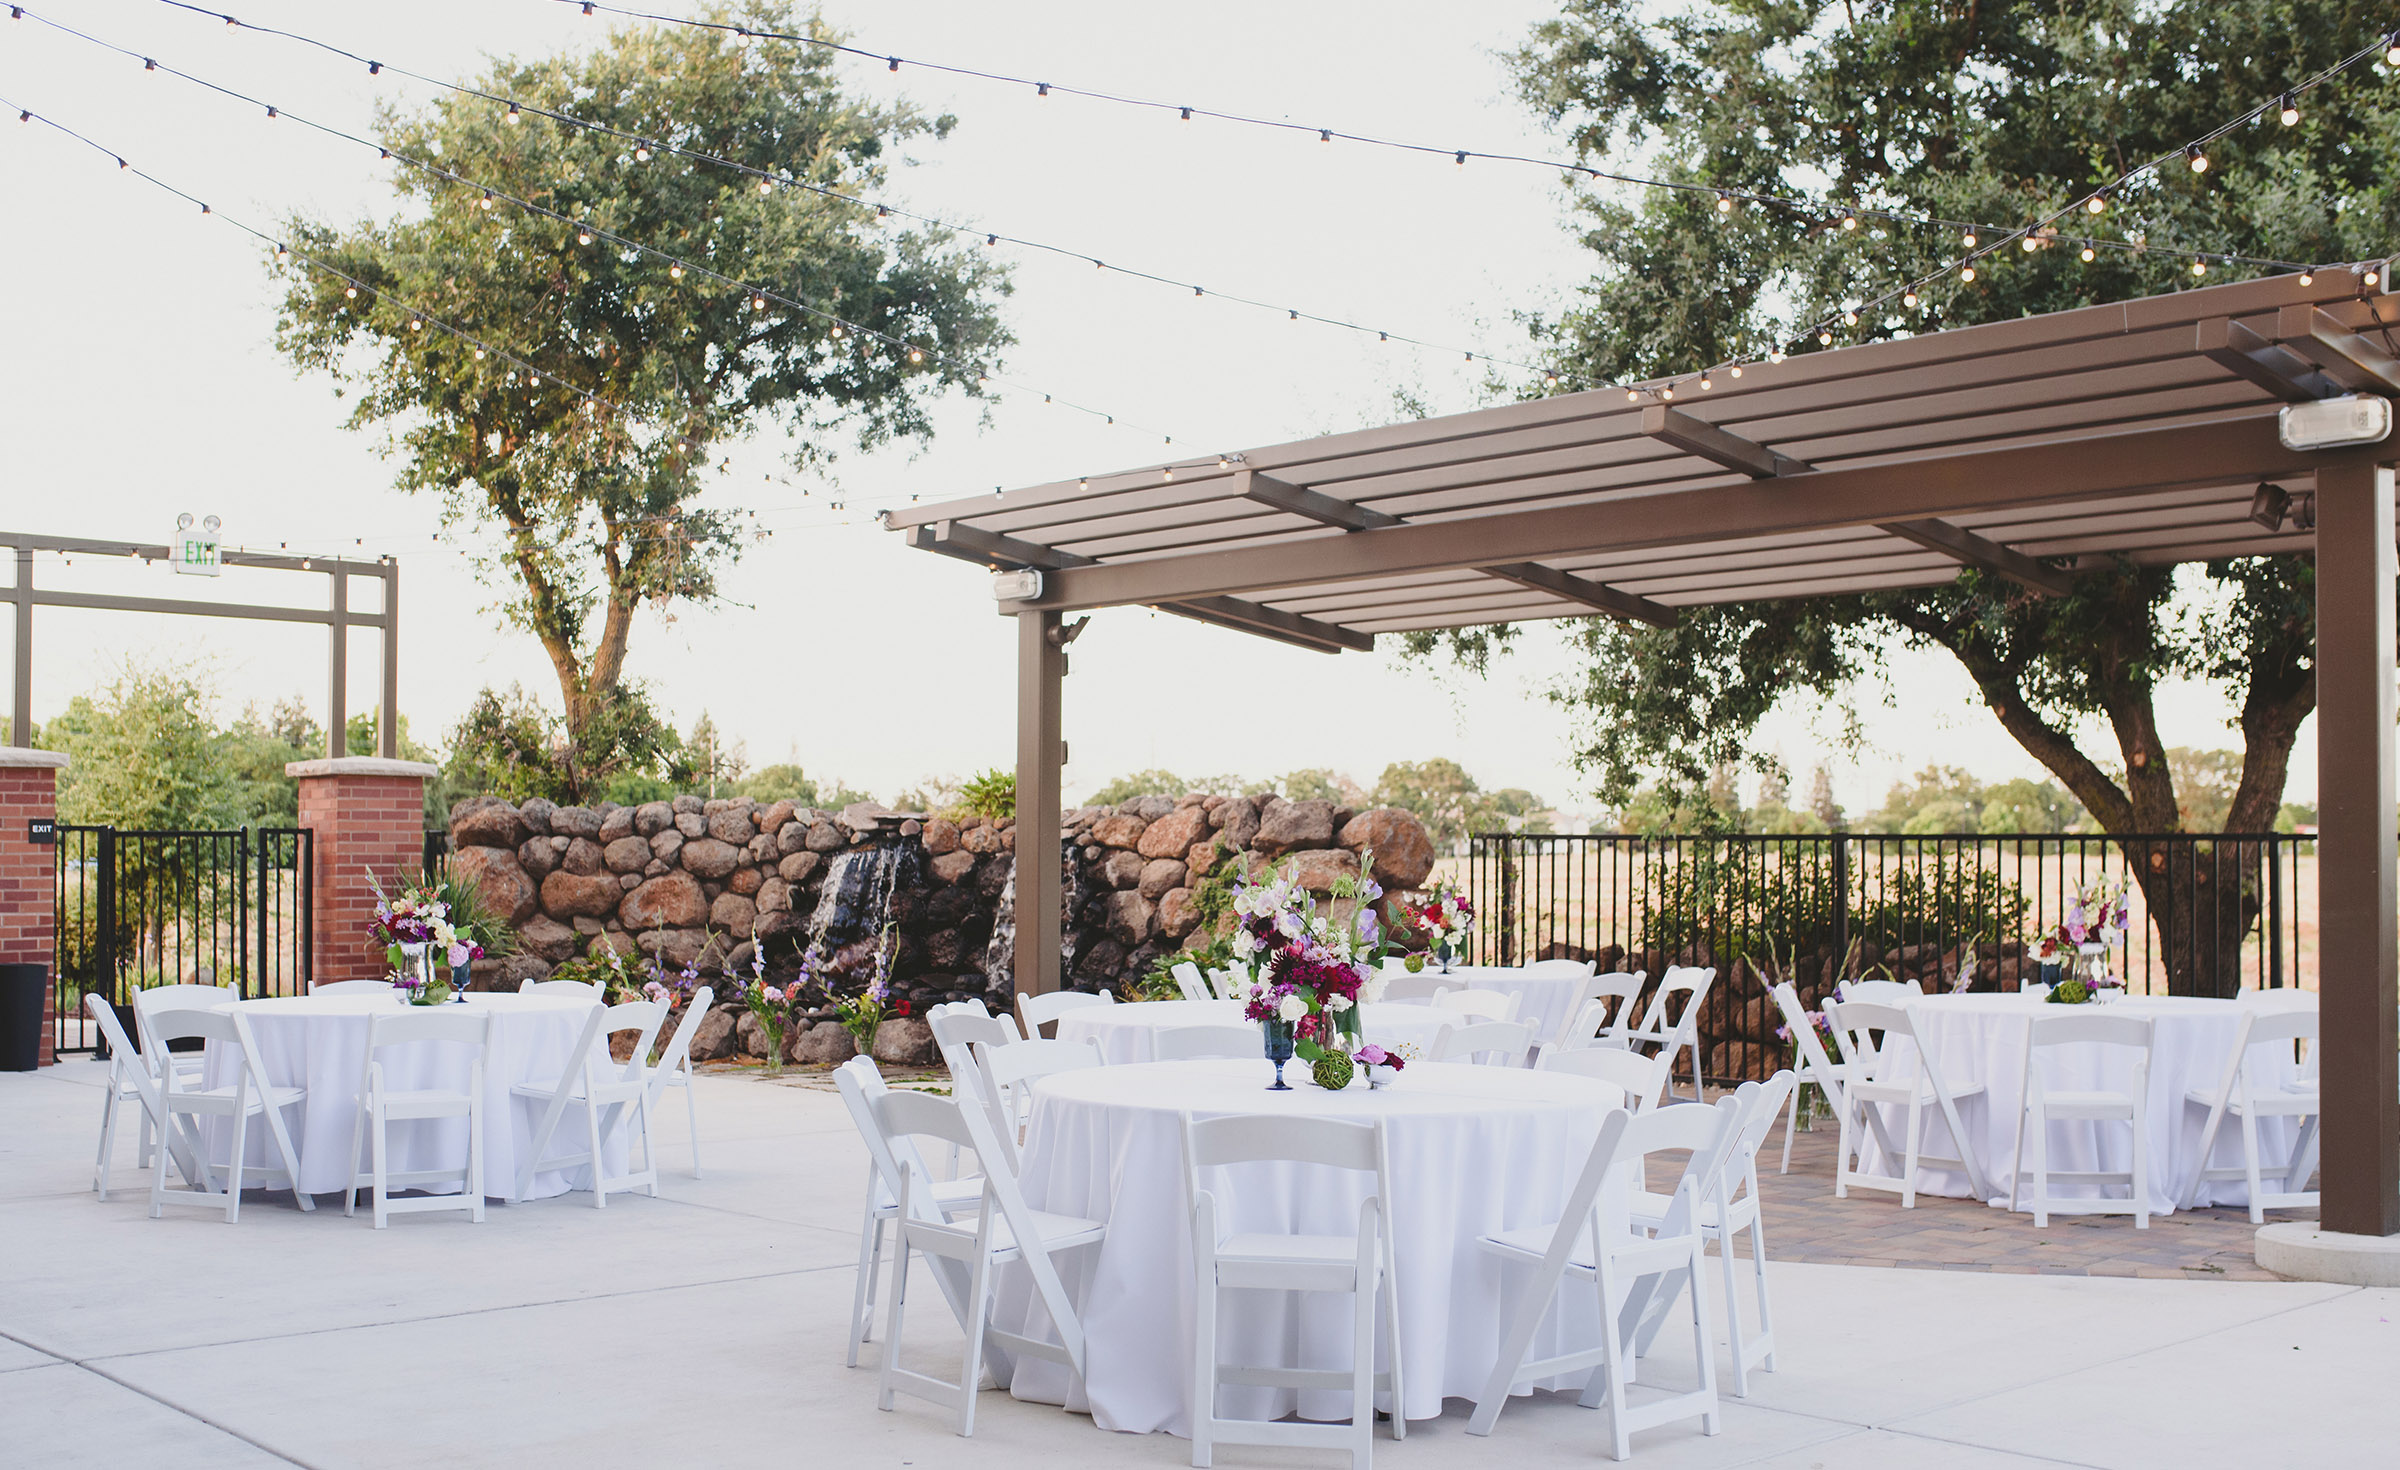 Outdoor wedding reception - Evergreen Springs - Elk Grove, California - Sacramento County - Wedgewood Weddings